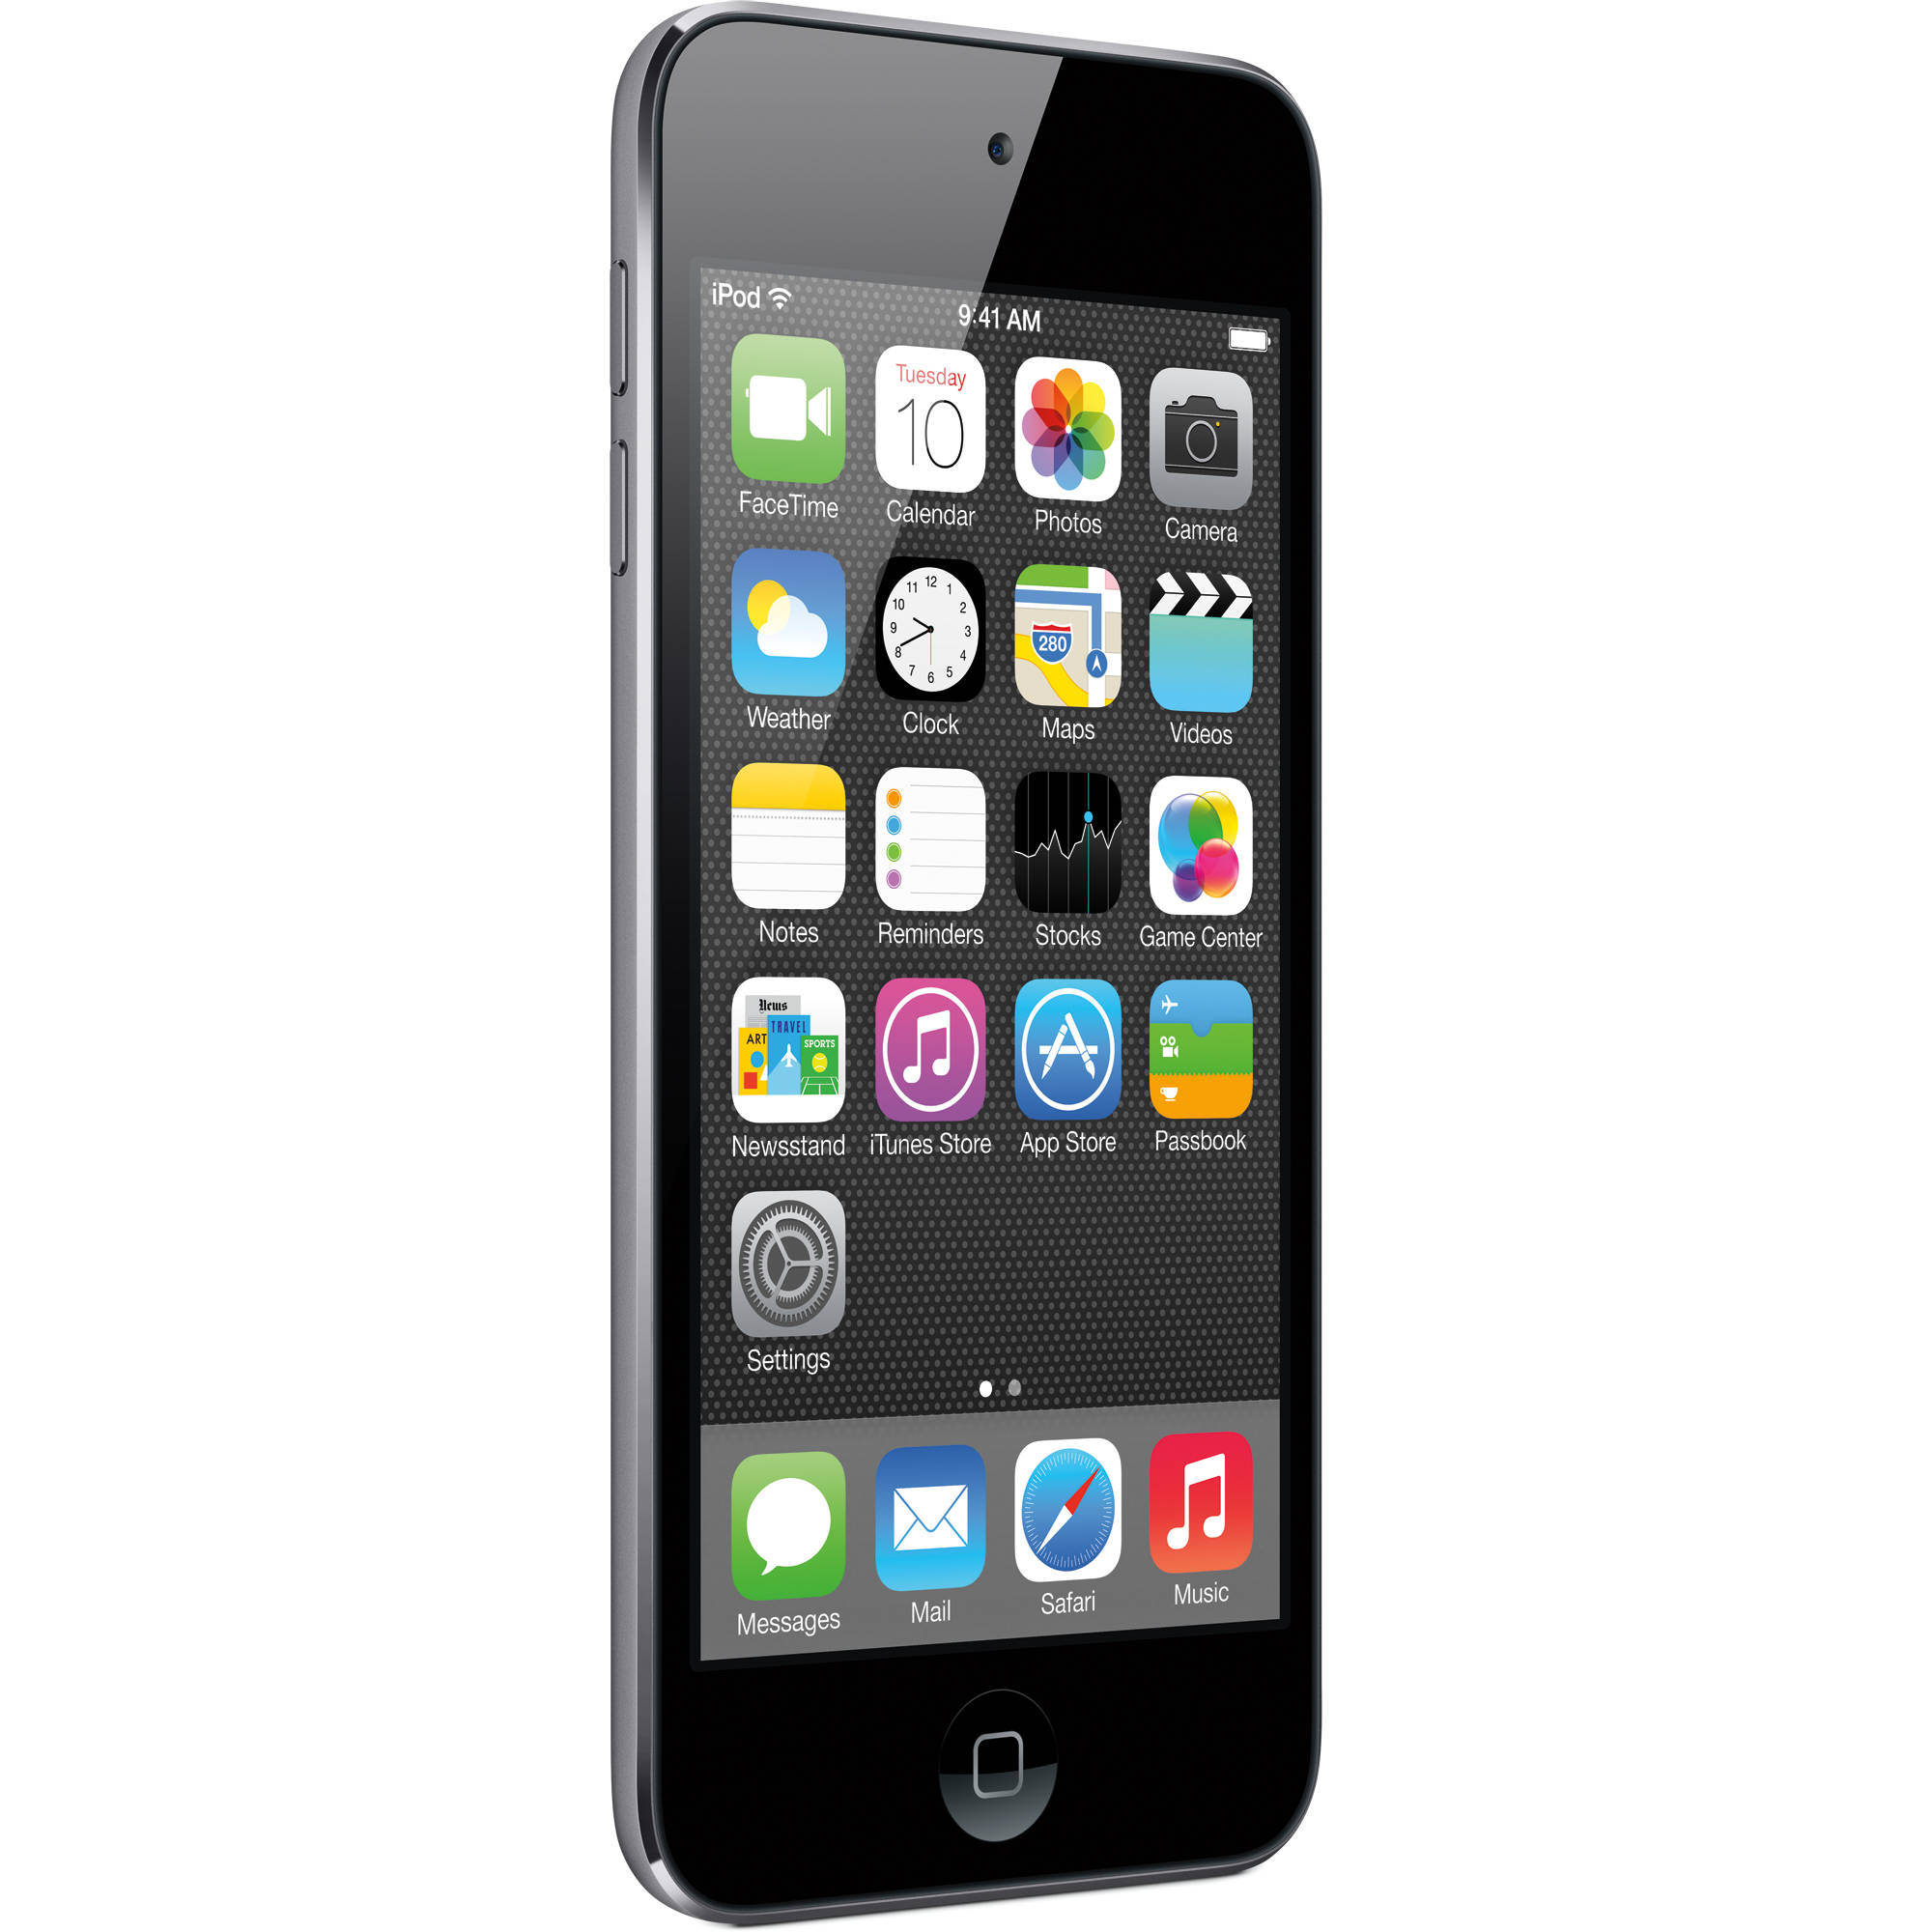 apple 32gb ipod touch space gray 5th generation me978ll a rh bhphotovideo com iPod Touch 4 Gen iPod Touch Gen 3